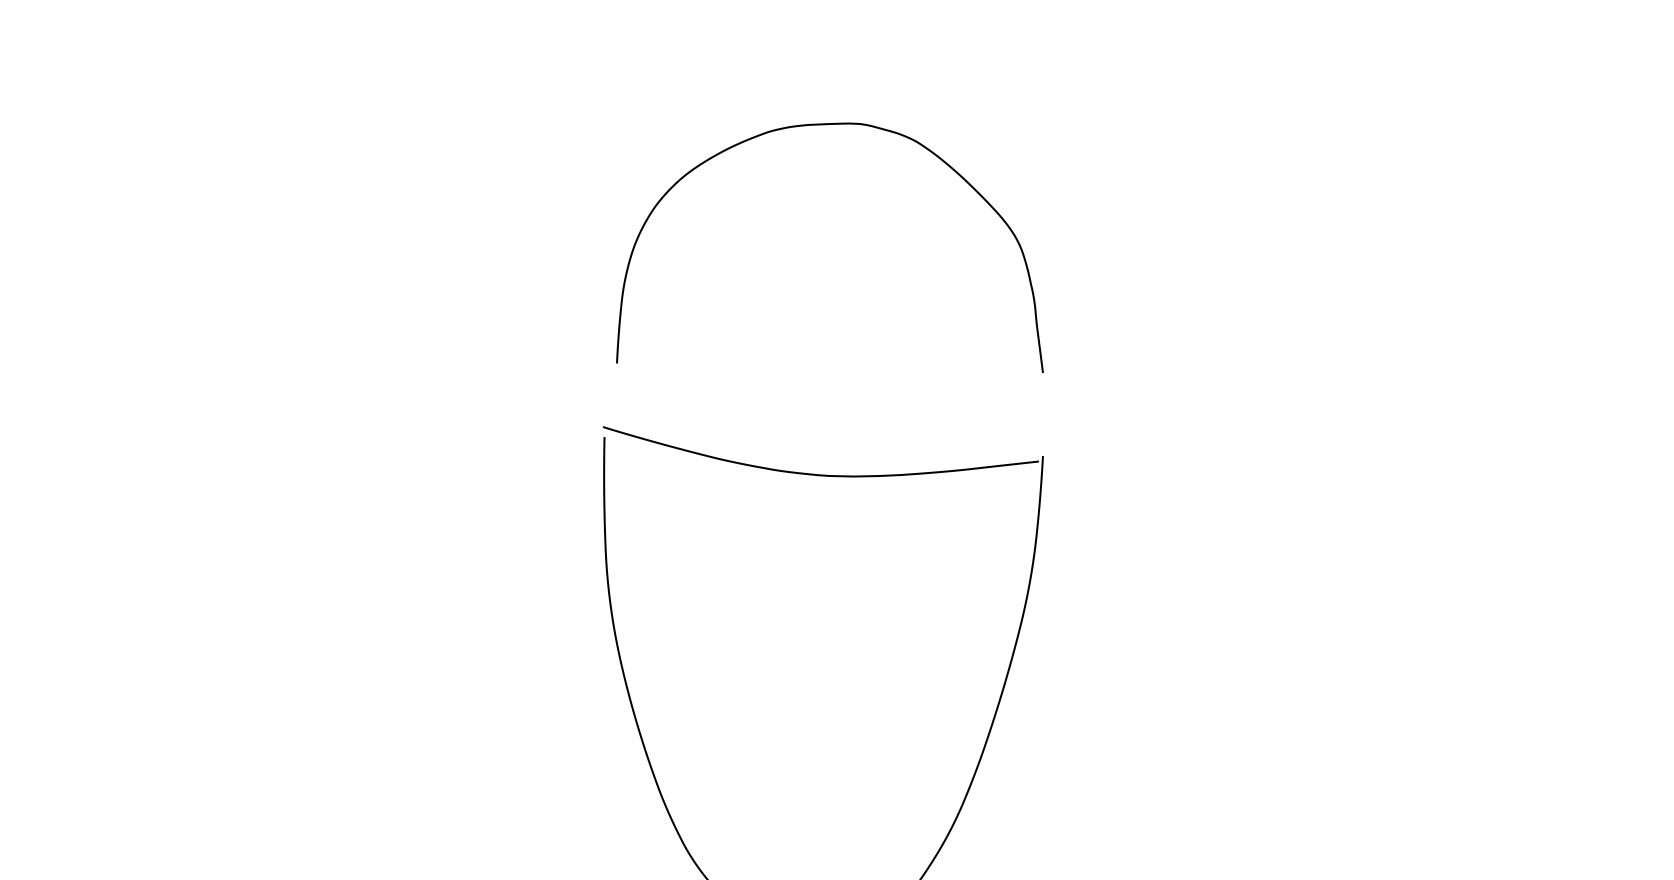 STEP 3 - Create a dome for the head